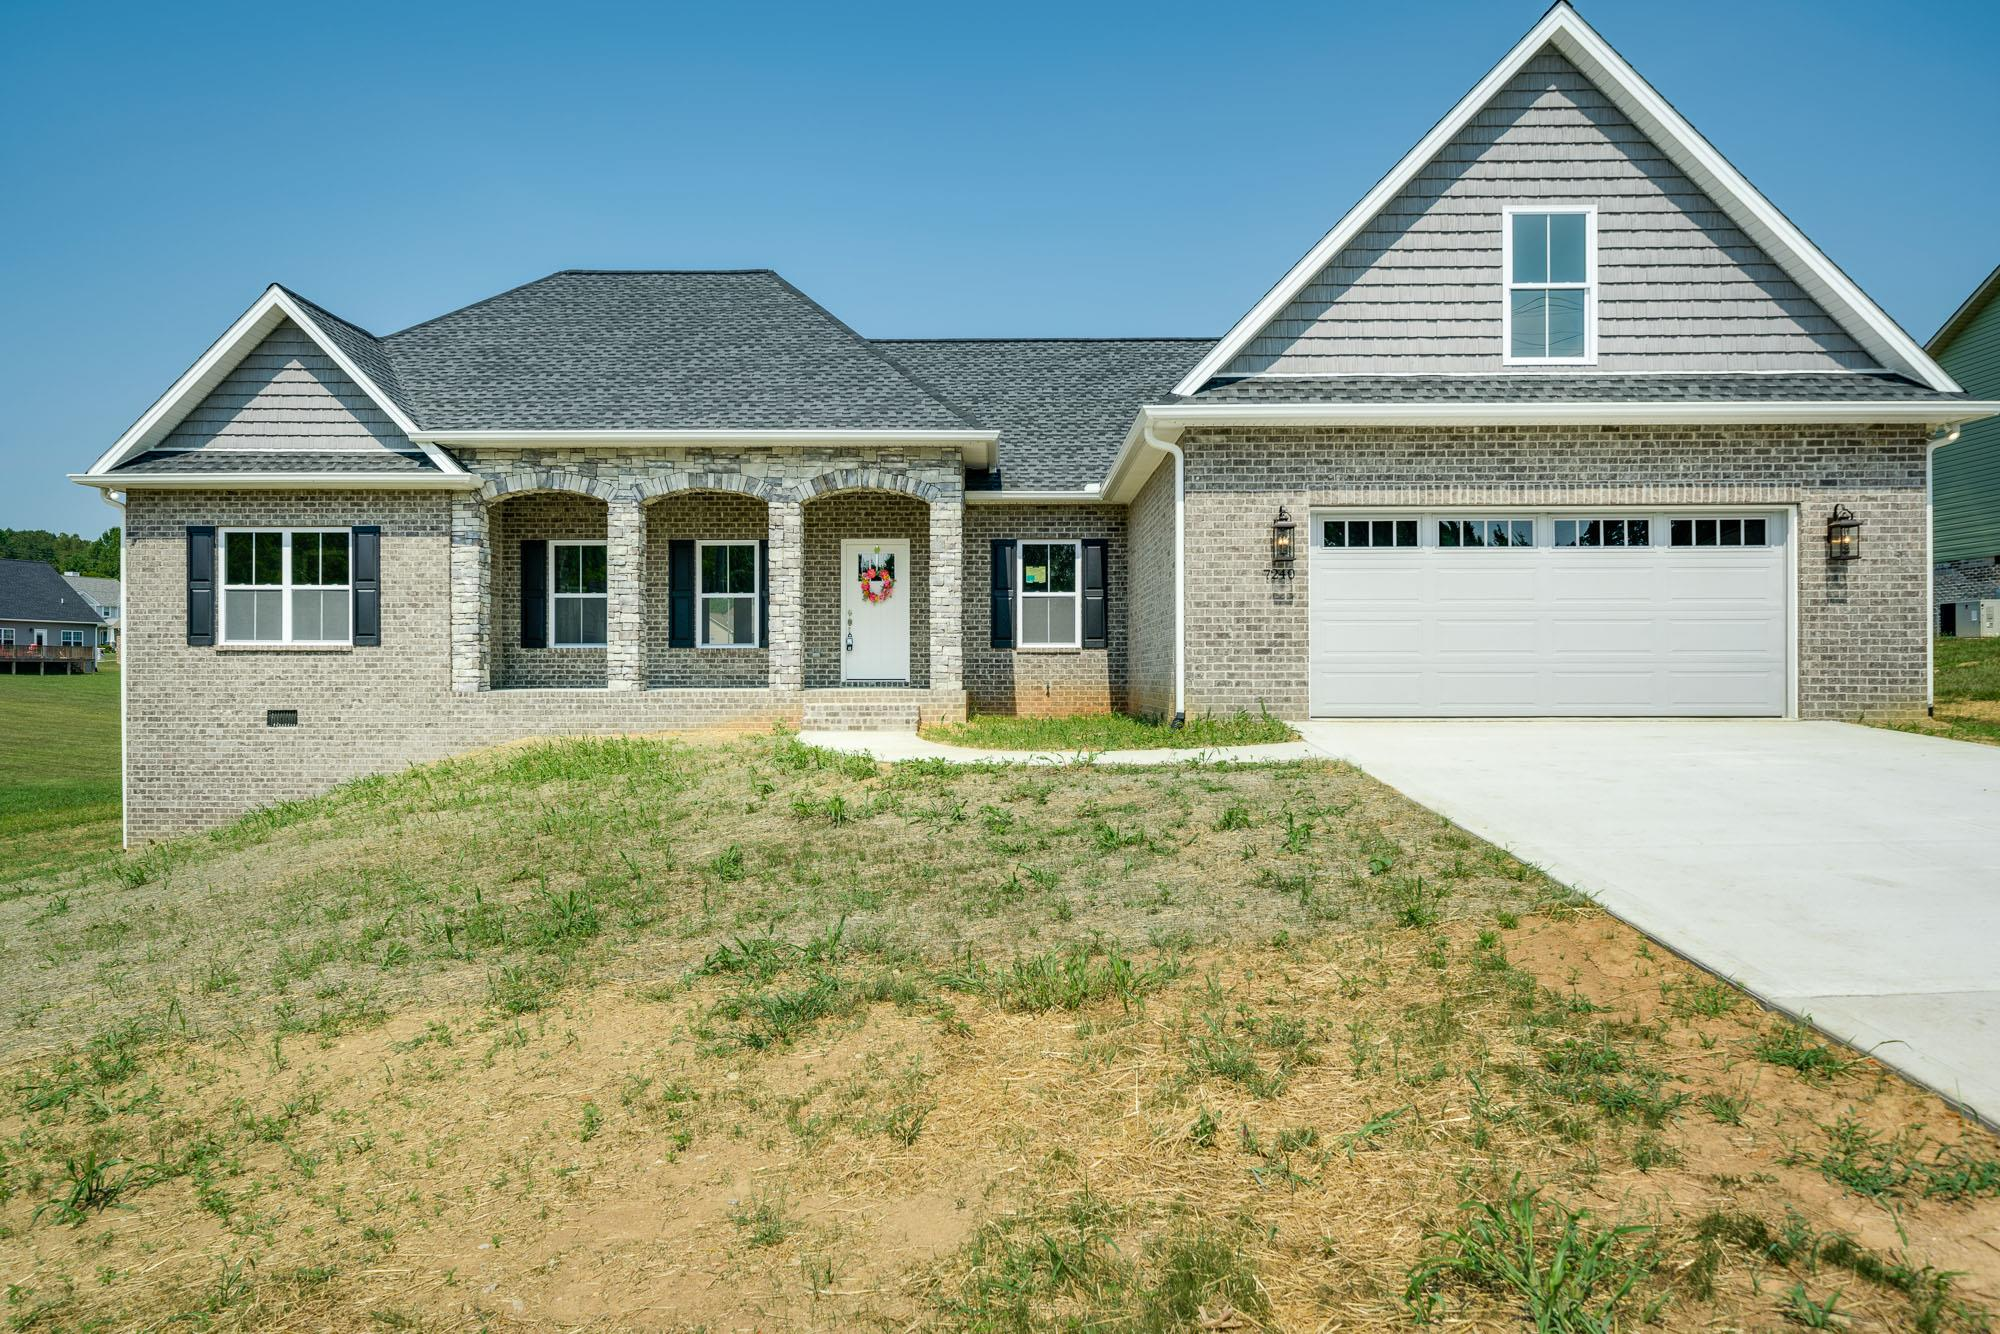 7240 Coleman Cir, Baxter, TN 38544 - Baxter, TN real estate listing